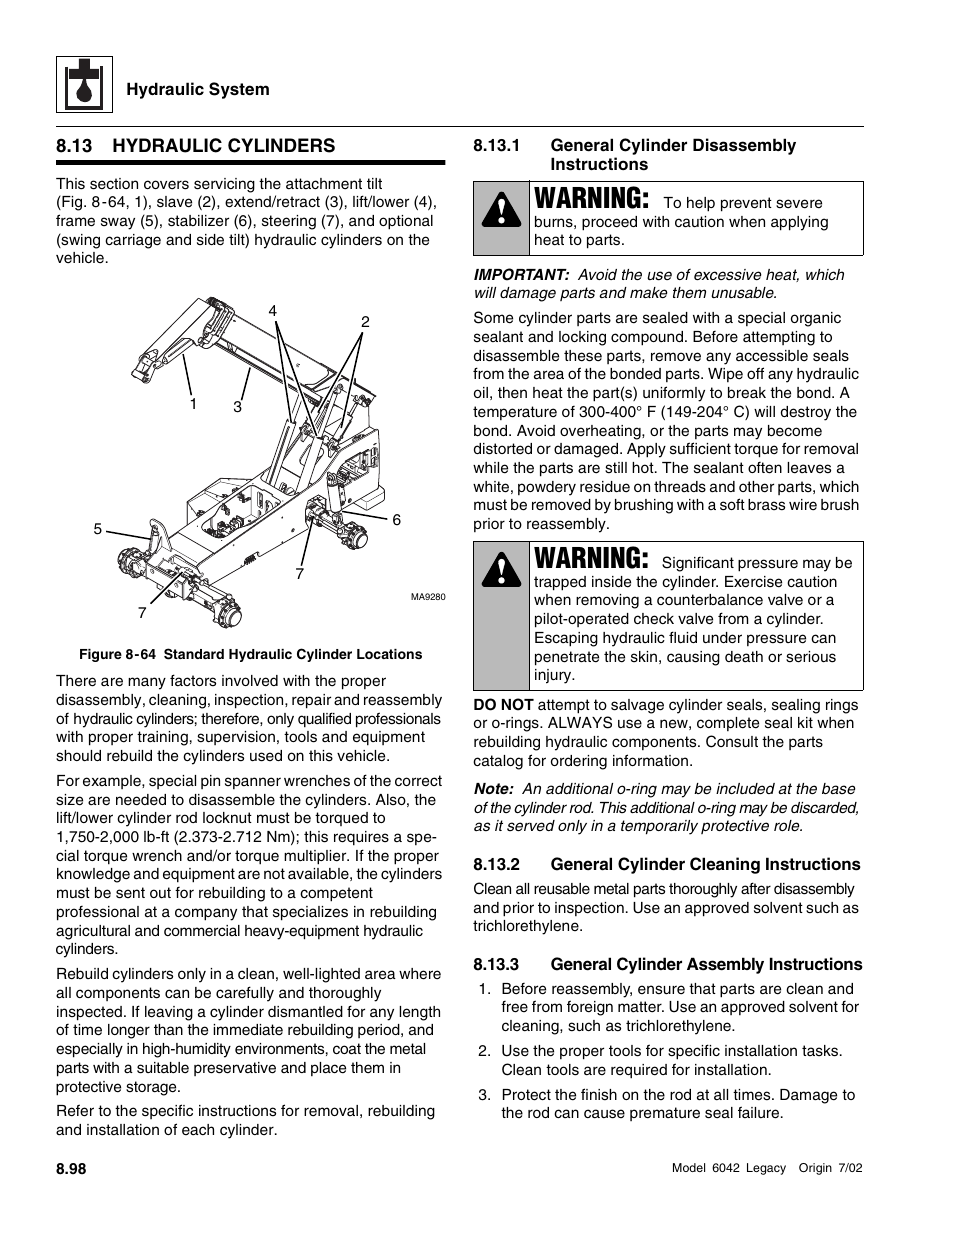 Hydraulic cylinders, 1 general cylinder disassembly instructions, 2